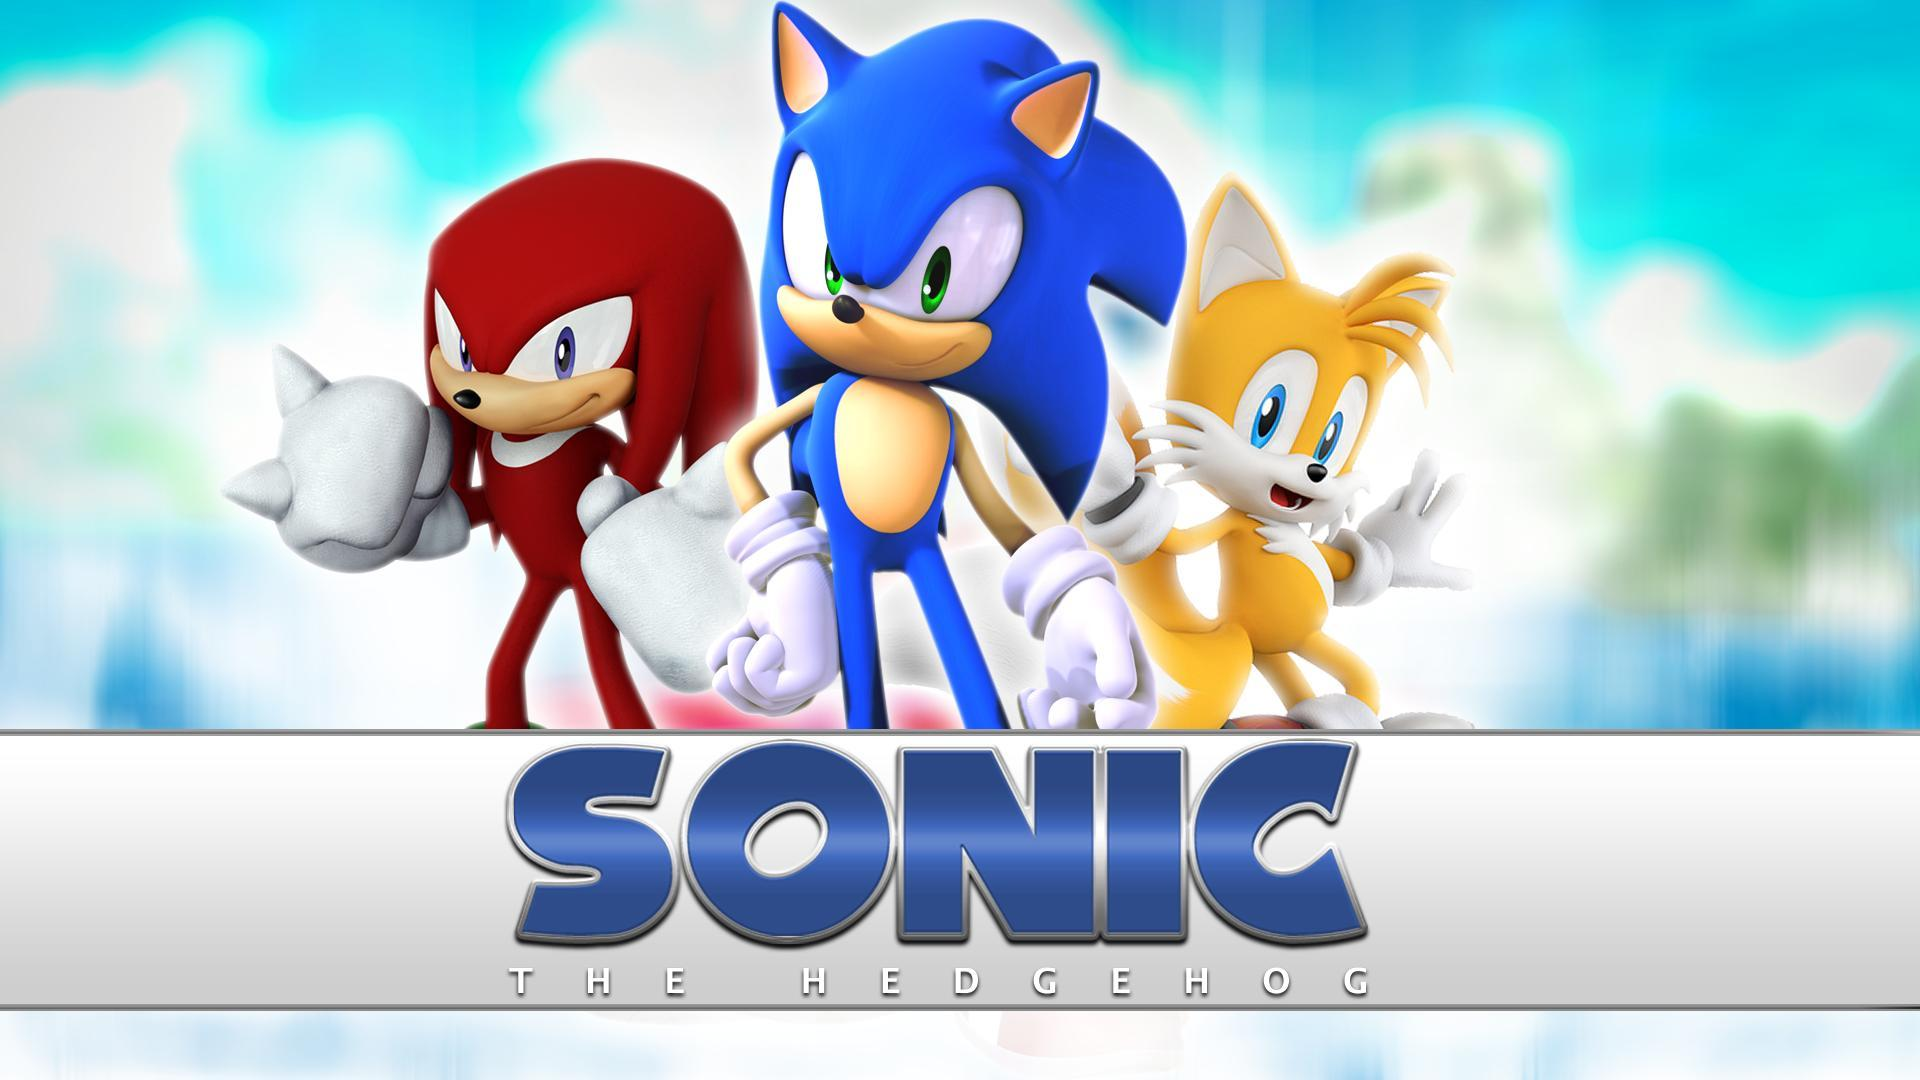 DeviantArt: More Like SONIC THE HEDGEHOG Wallpapers by Cepillo16